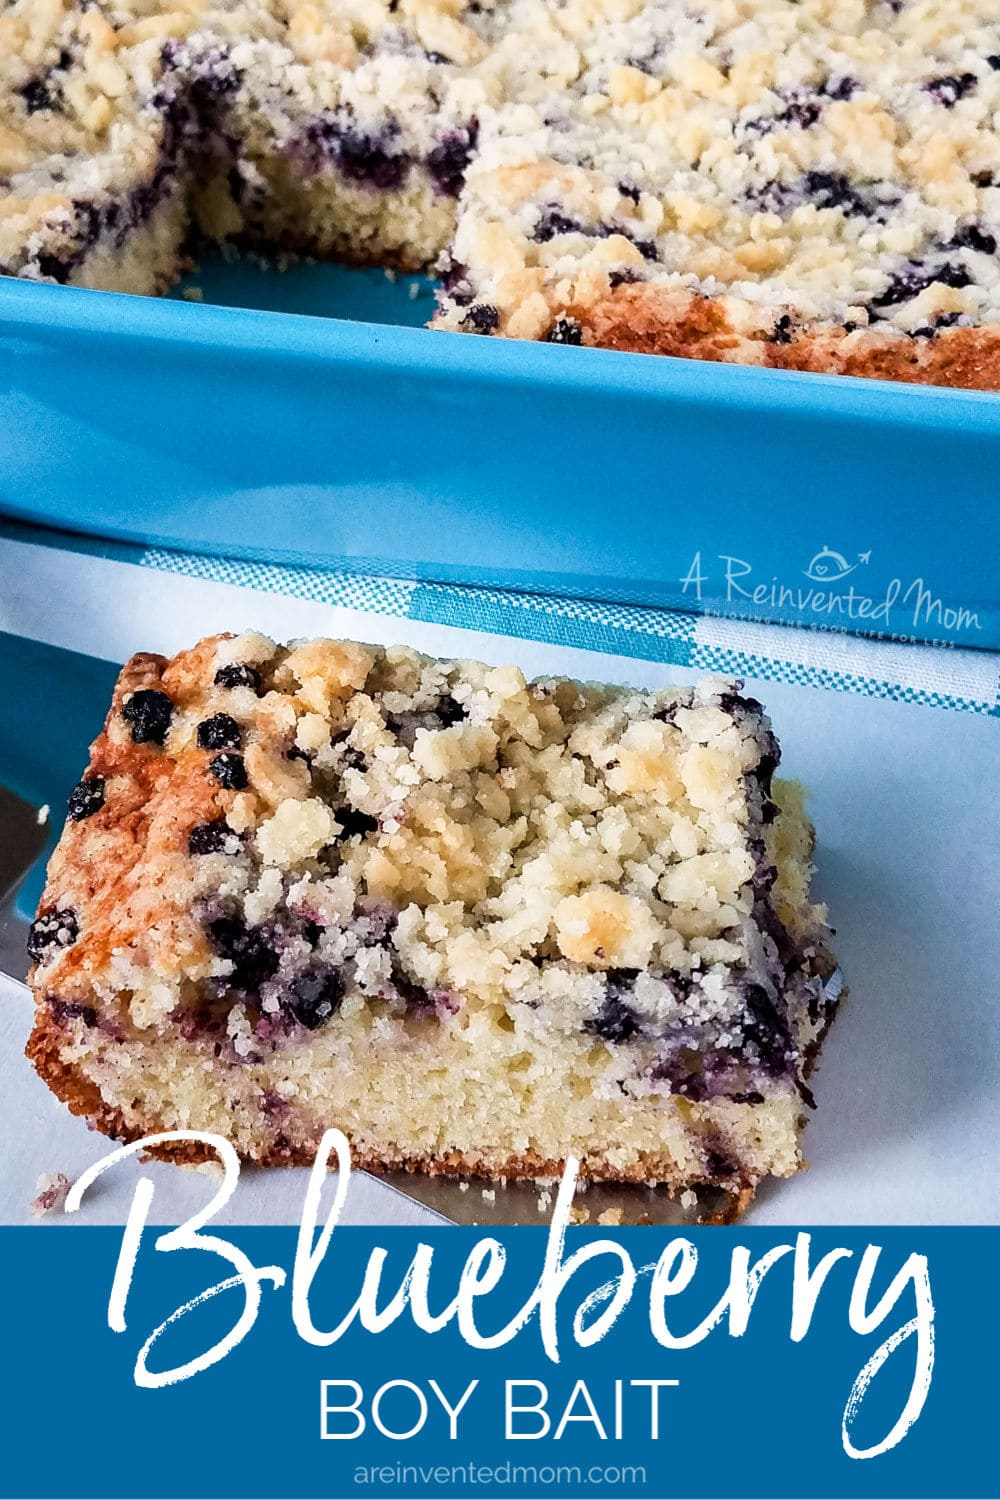 Slice of Blueberry Boy Bait on spatula with cake pan in the background.